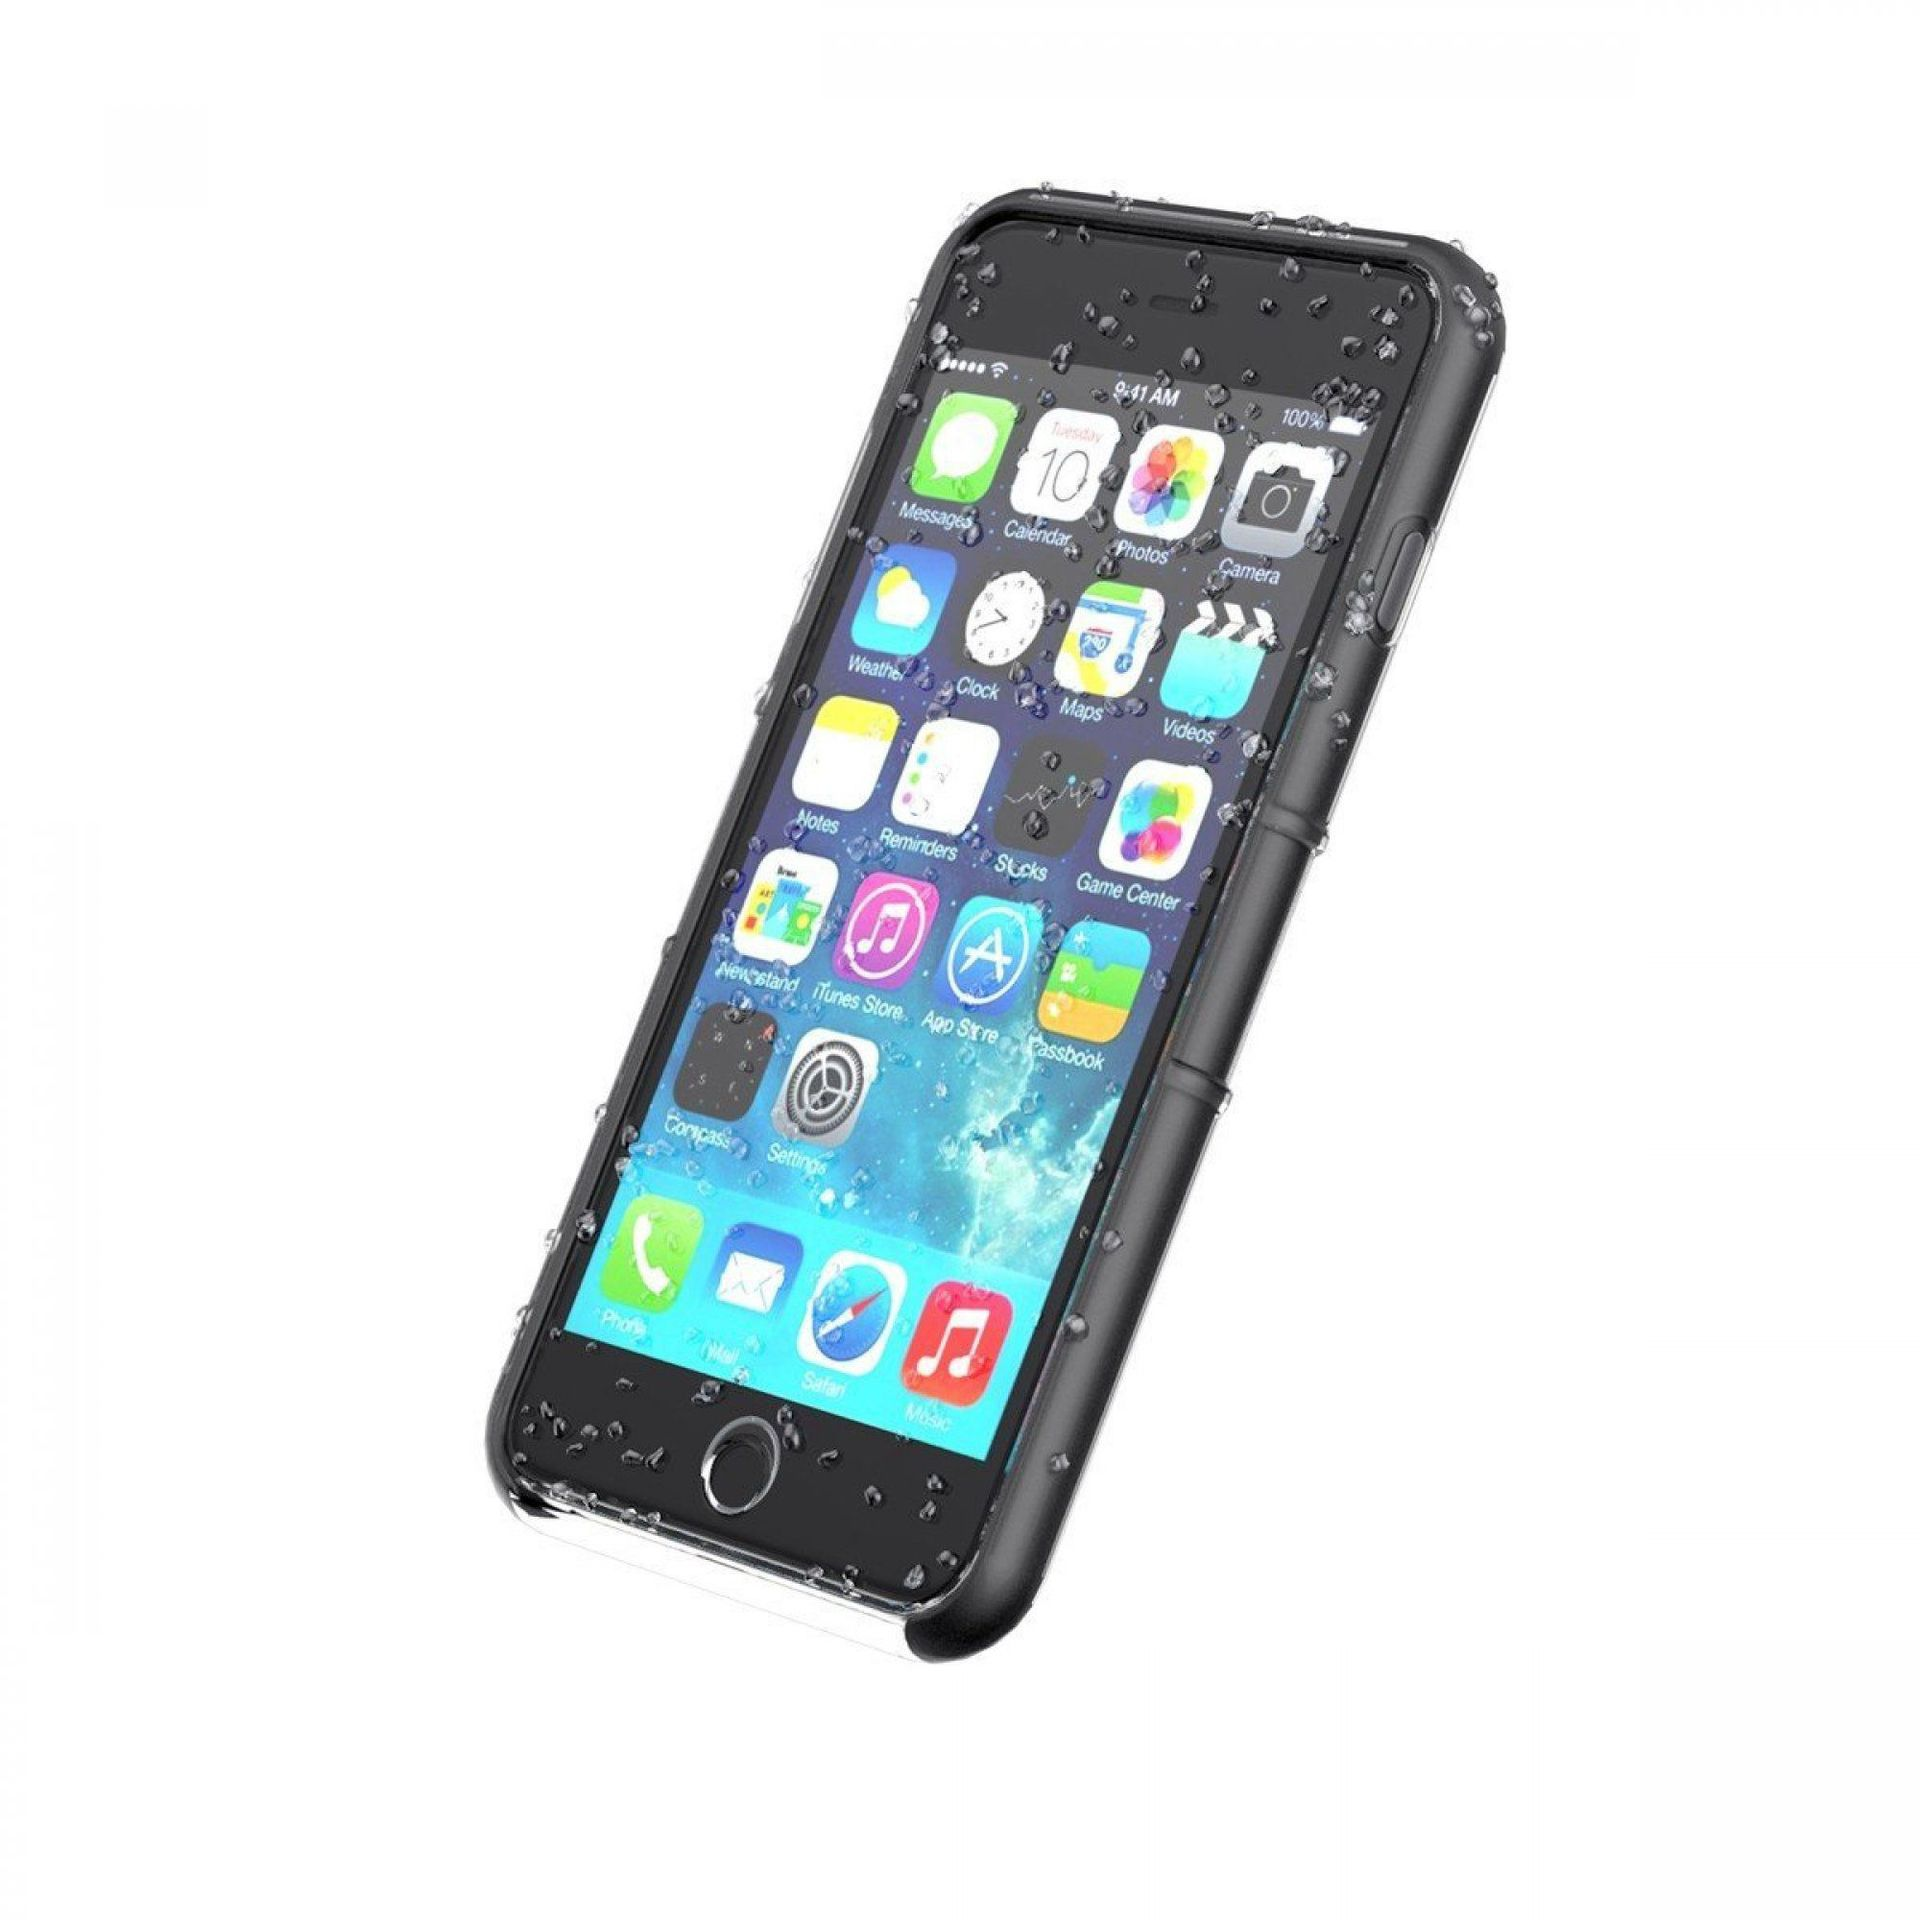 POKROWIEC NA TELEFON SP WEATHER COVER IPHONE 66S 2